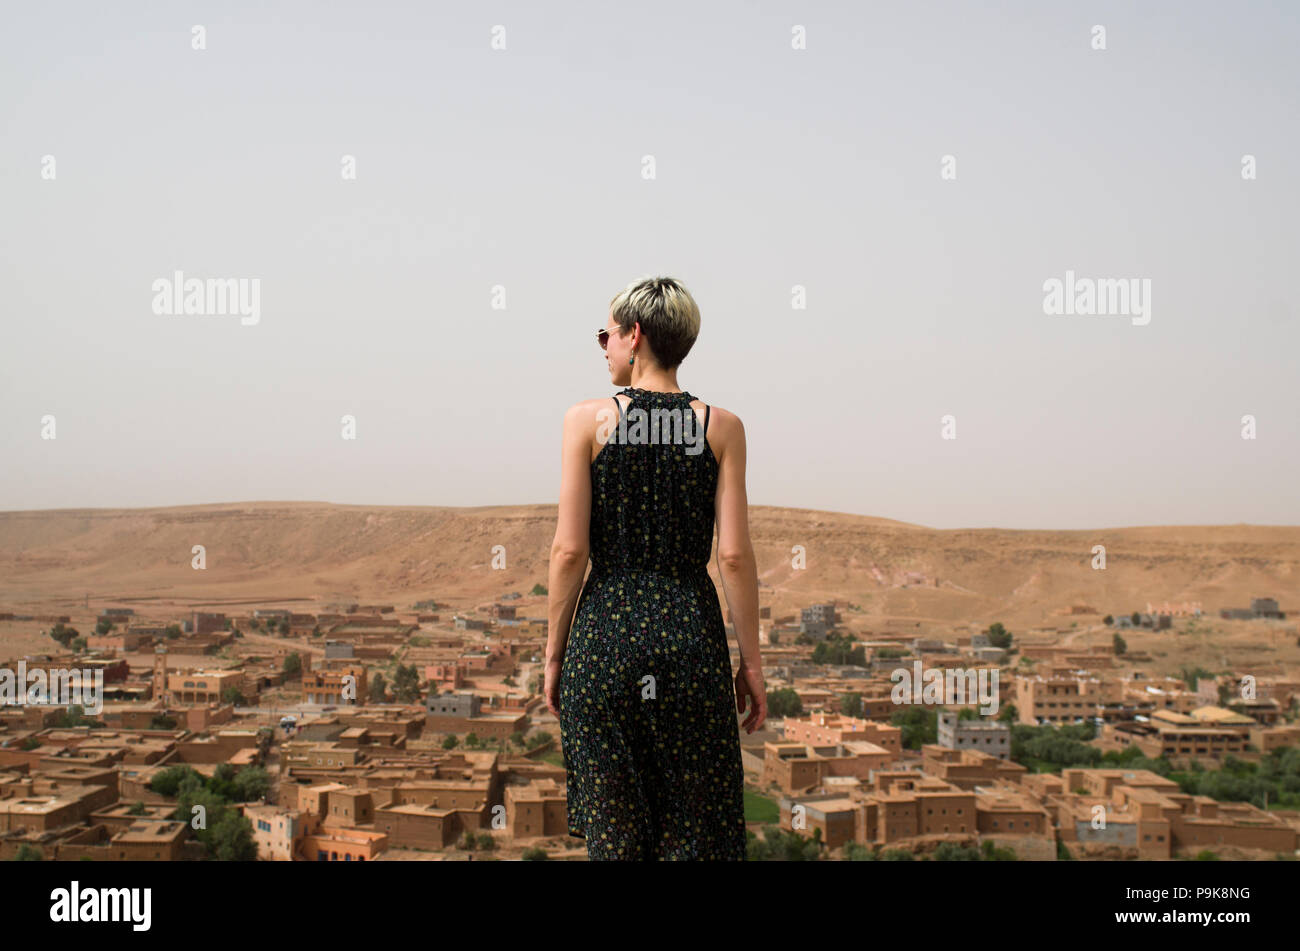 Woman standing above a village, morocco - Stock Image